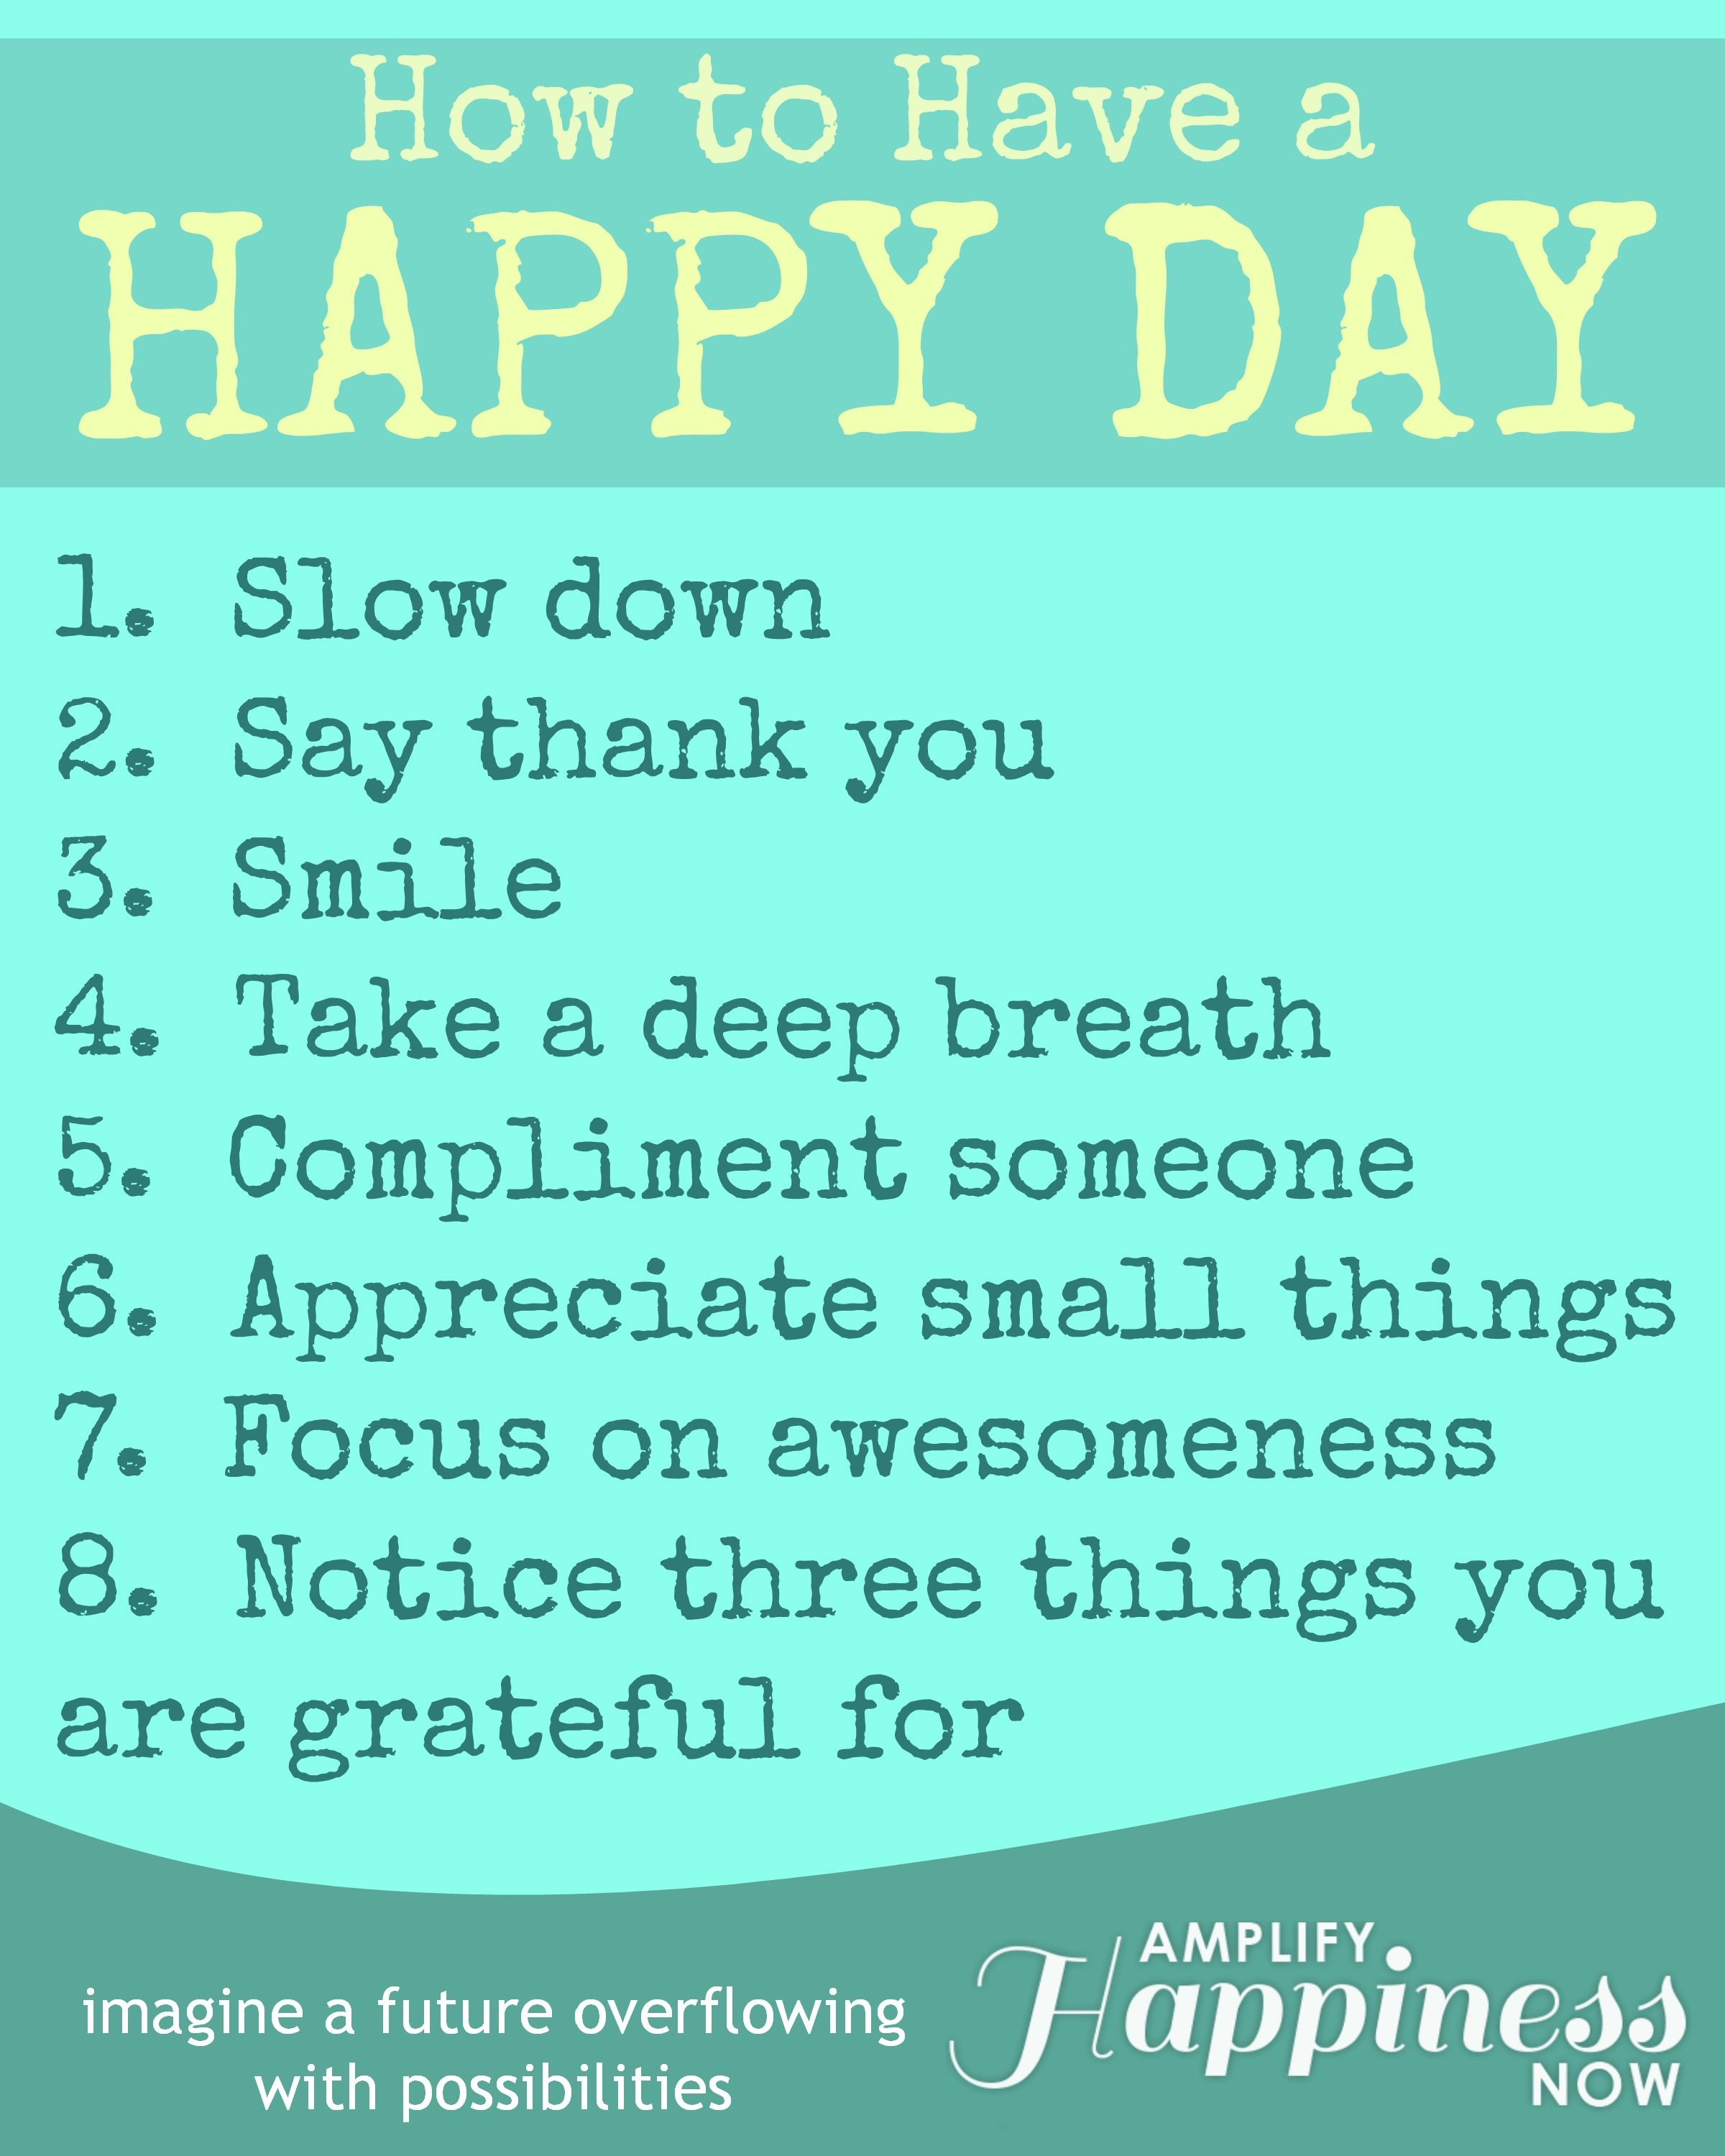 How to have a happy day... #wisdom #inspiration #happiness ...